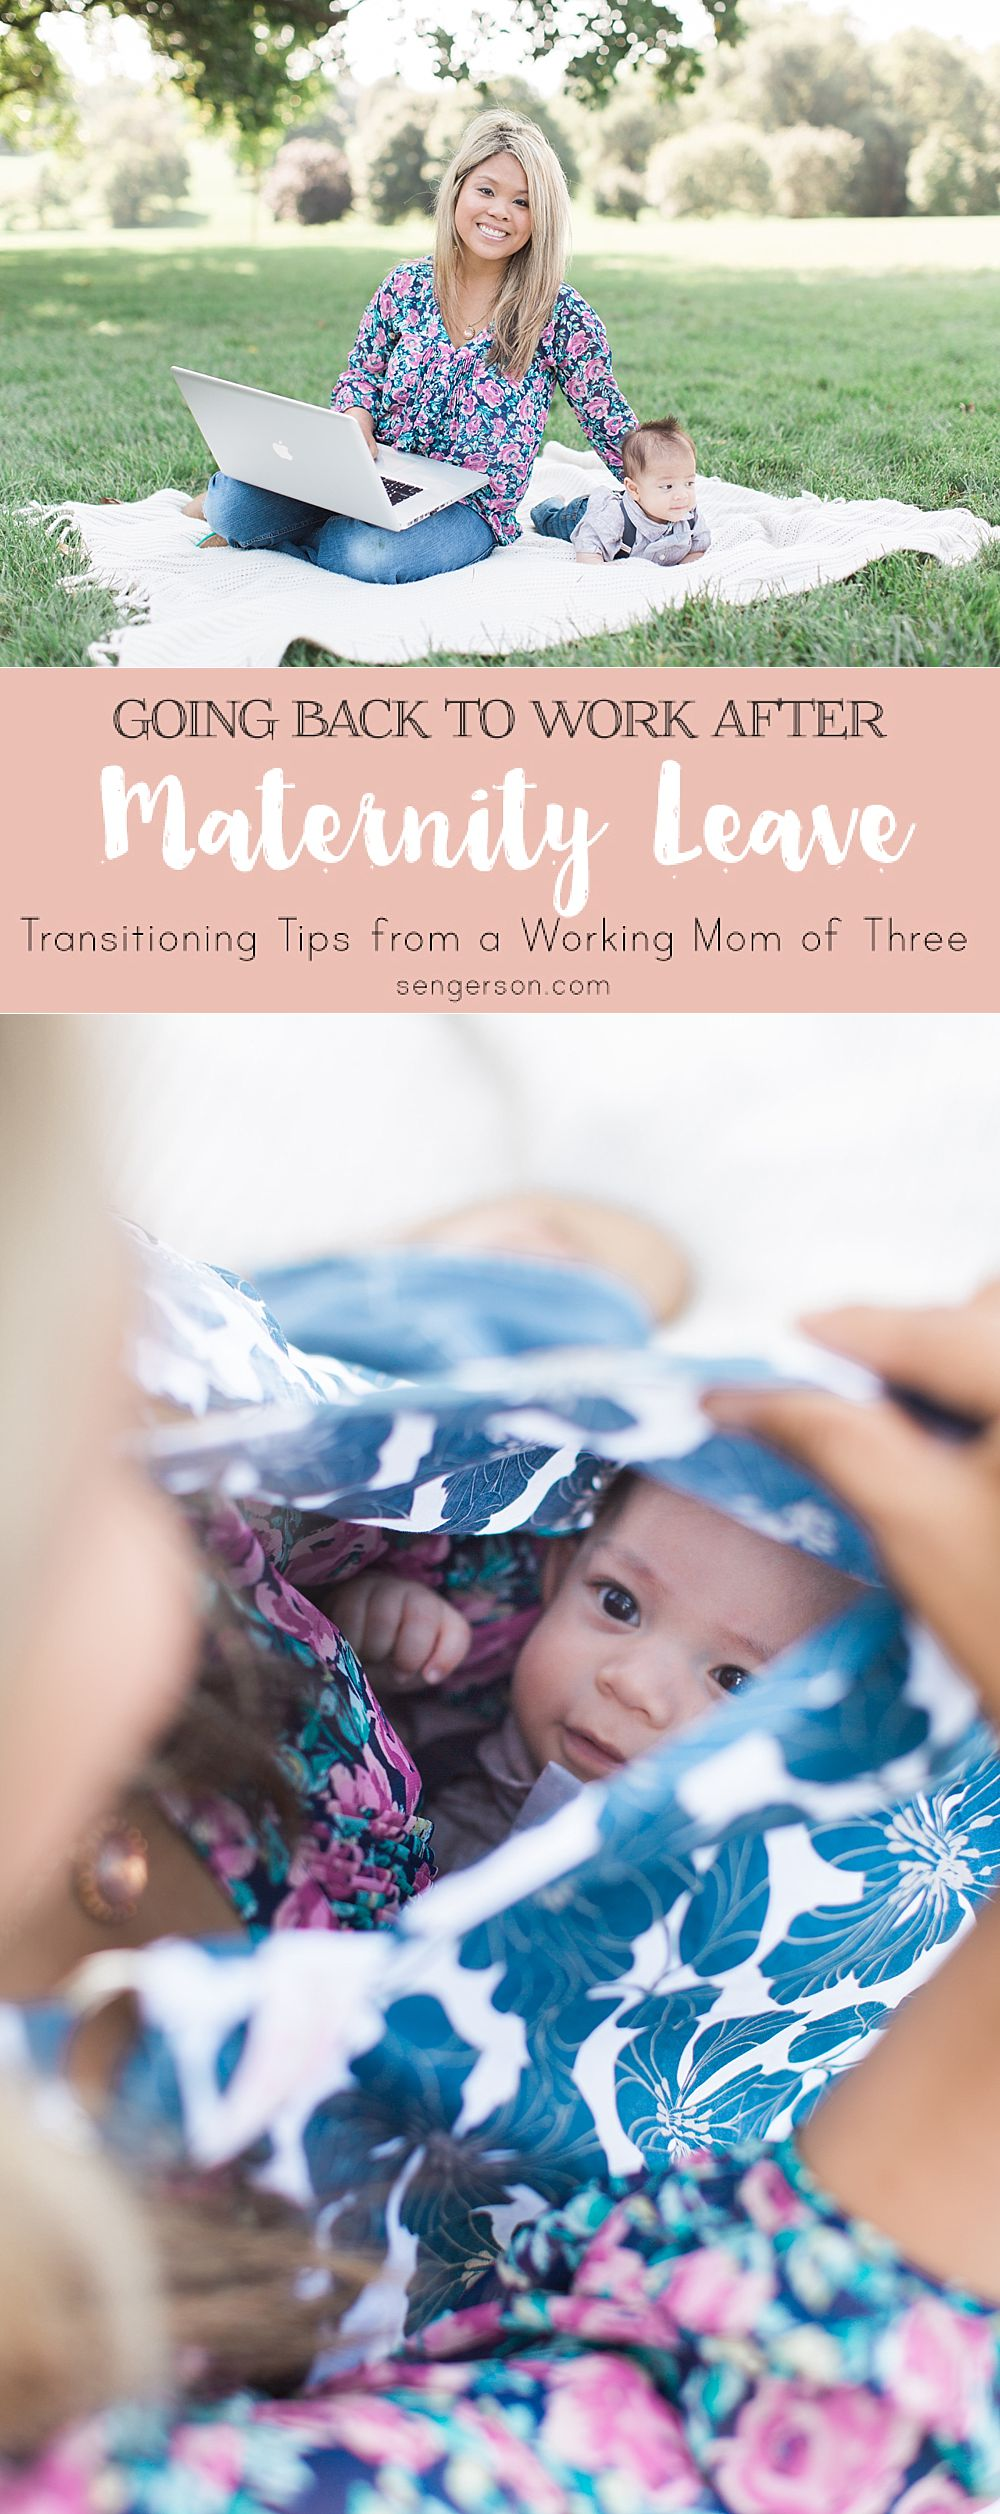 Some tips and tricks from an experienced working mom of three kids on how to manage the initial transition of going back to work after maternity leave. Tried and true tips.